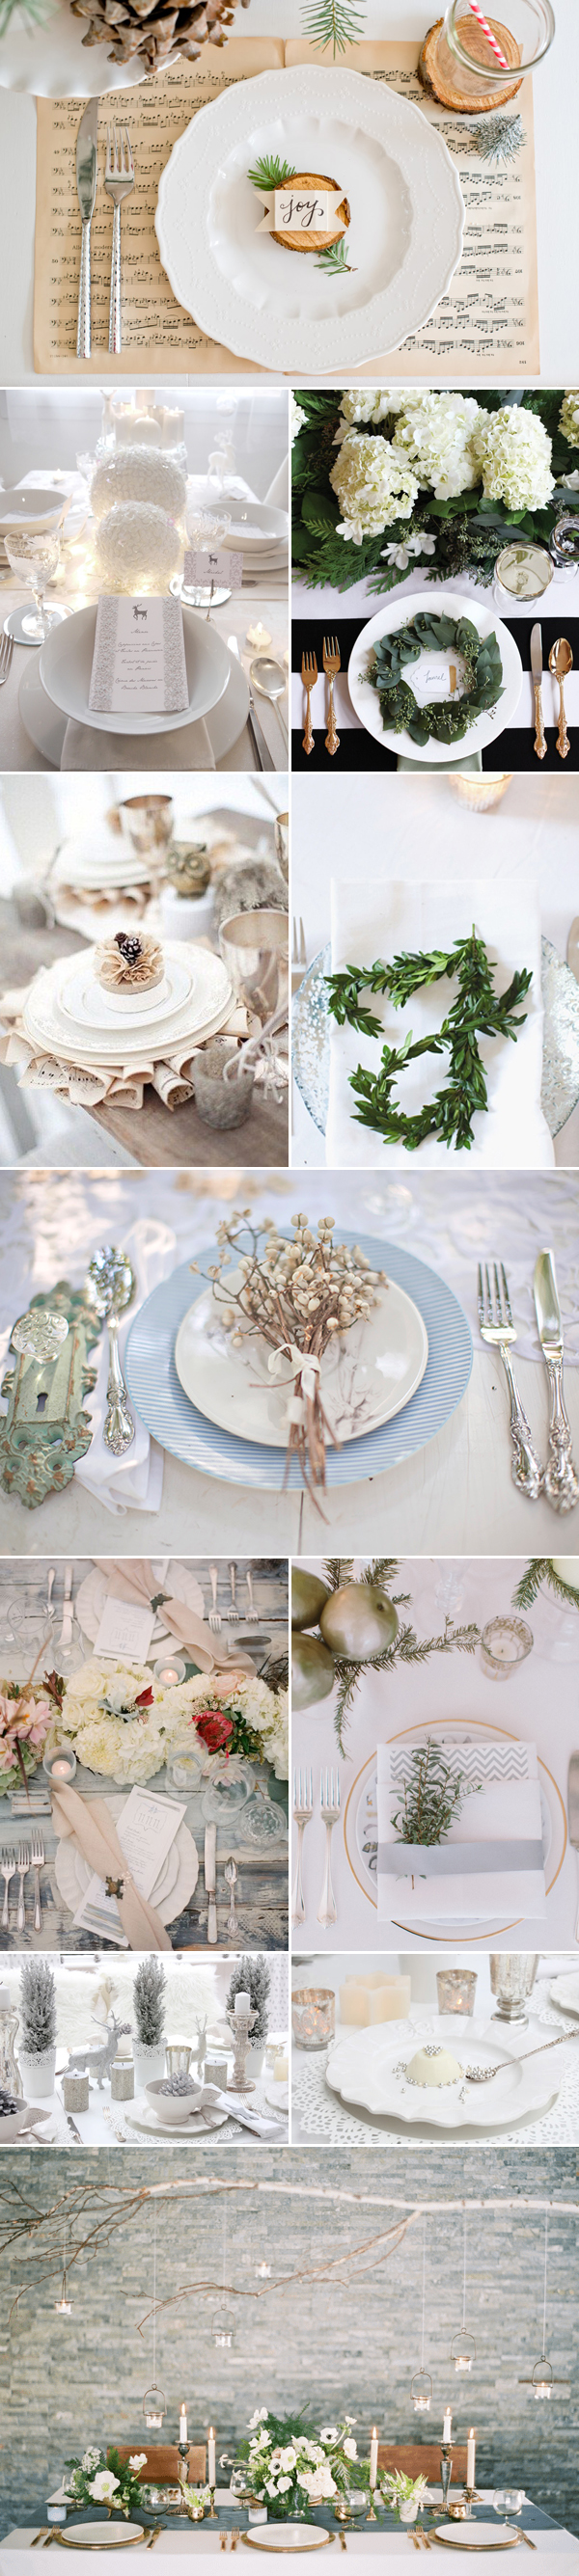 winter-placesetting02-pure-5257-14170208